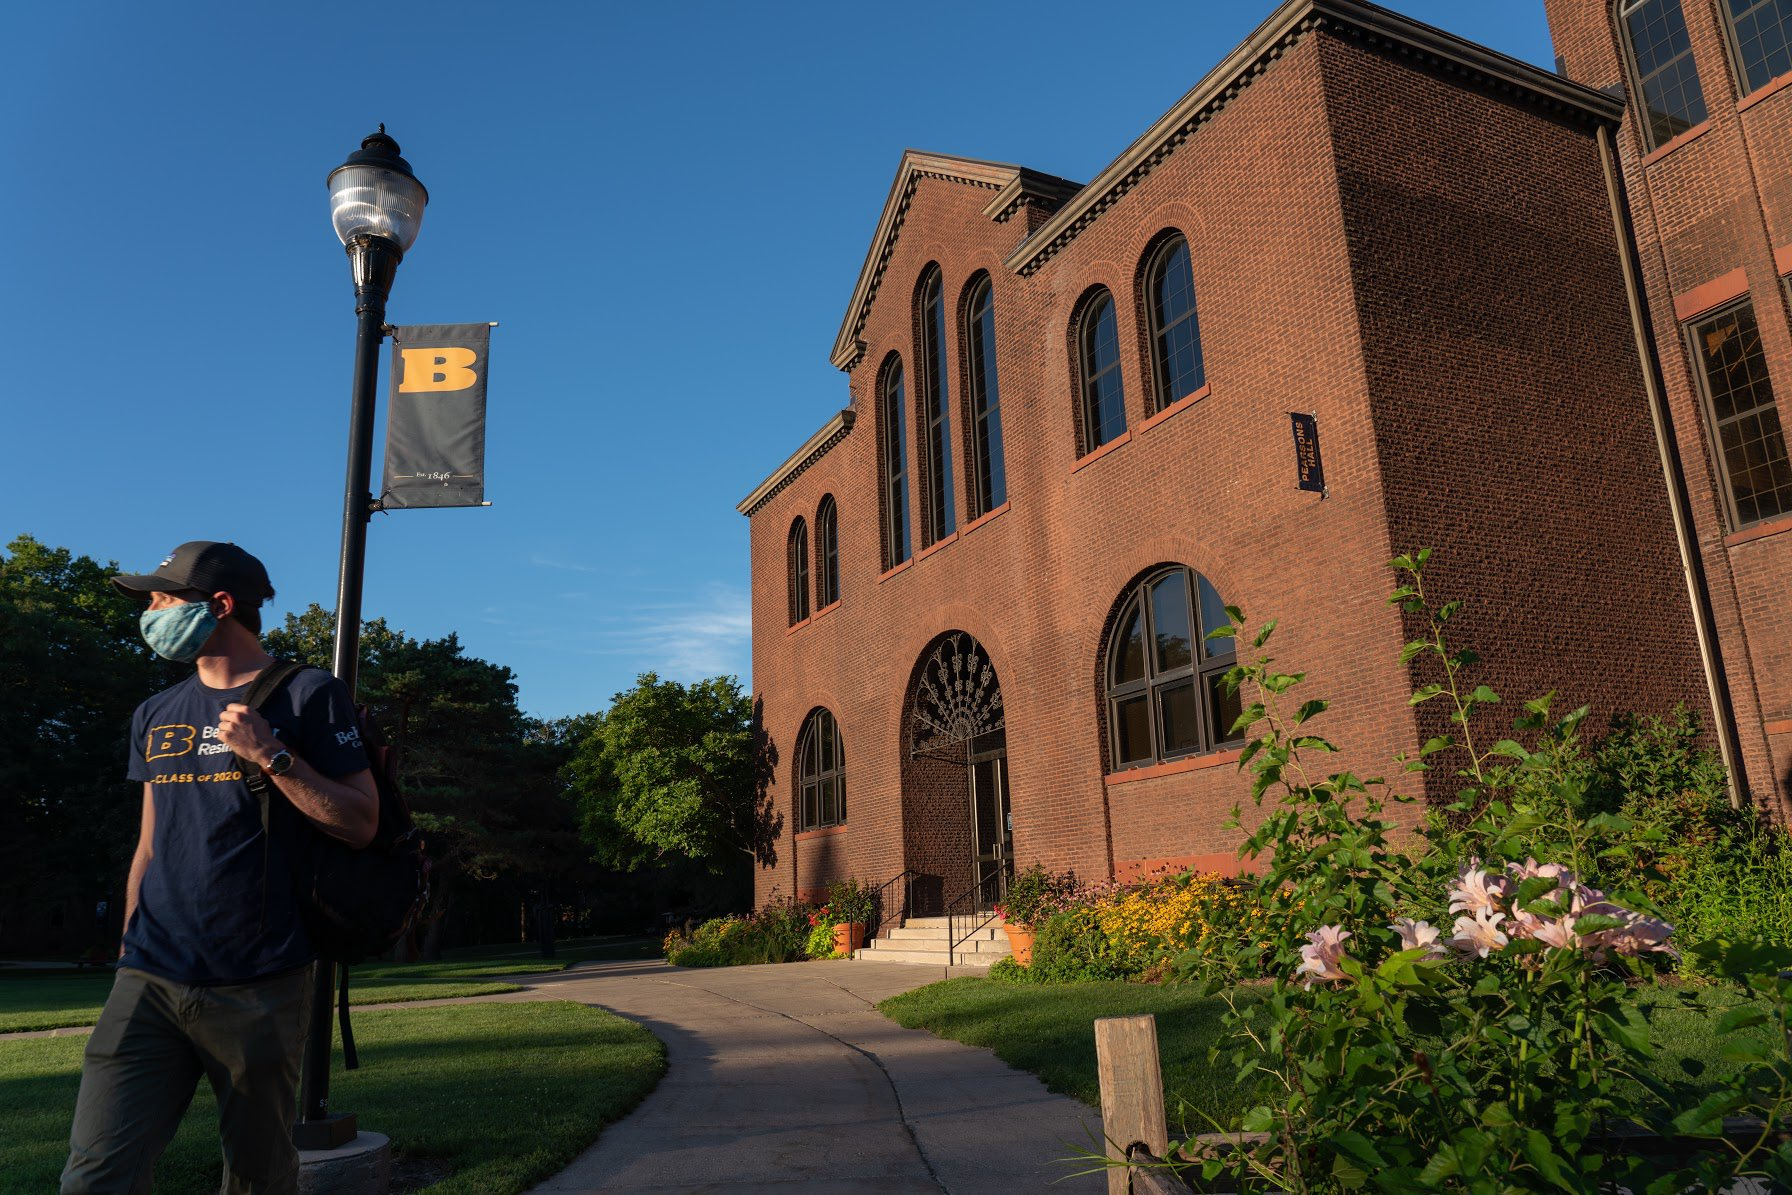 Beloit College launched a two-week career accelerator program that helped students identify, prepare for, and apply for internships, jobs, and other career-related opportunities.